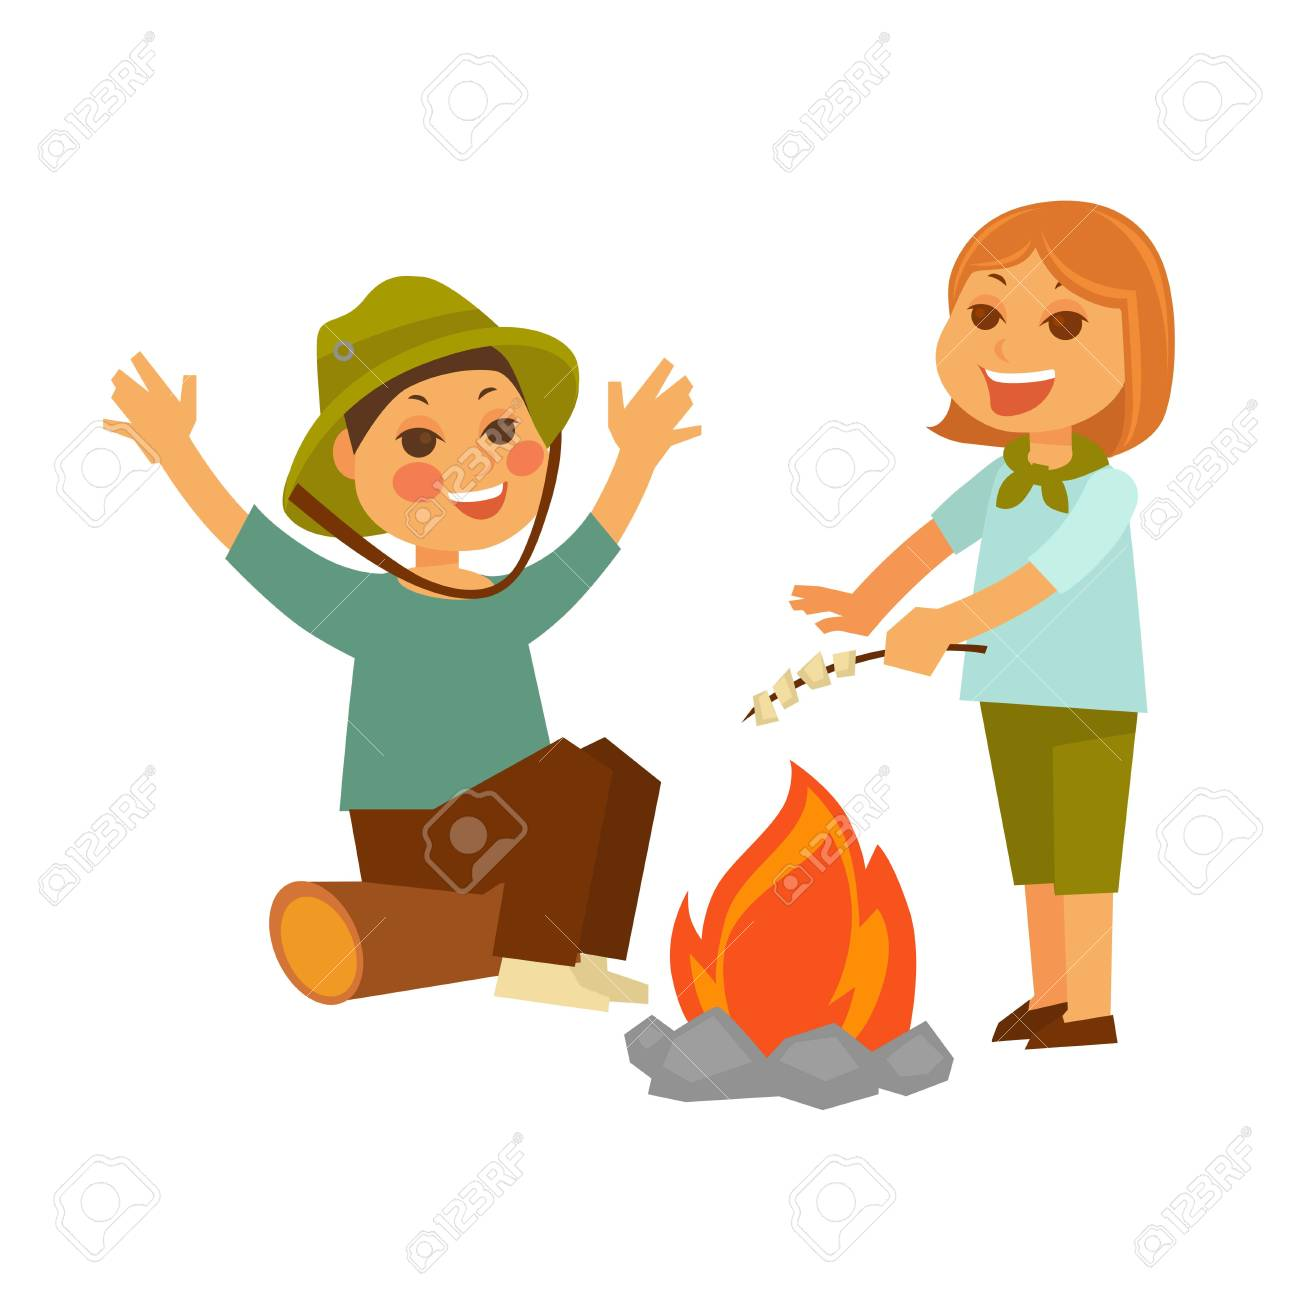 Children At Picnic In Forest With Campfire And Marshmallow Stock Vector